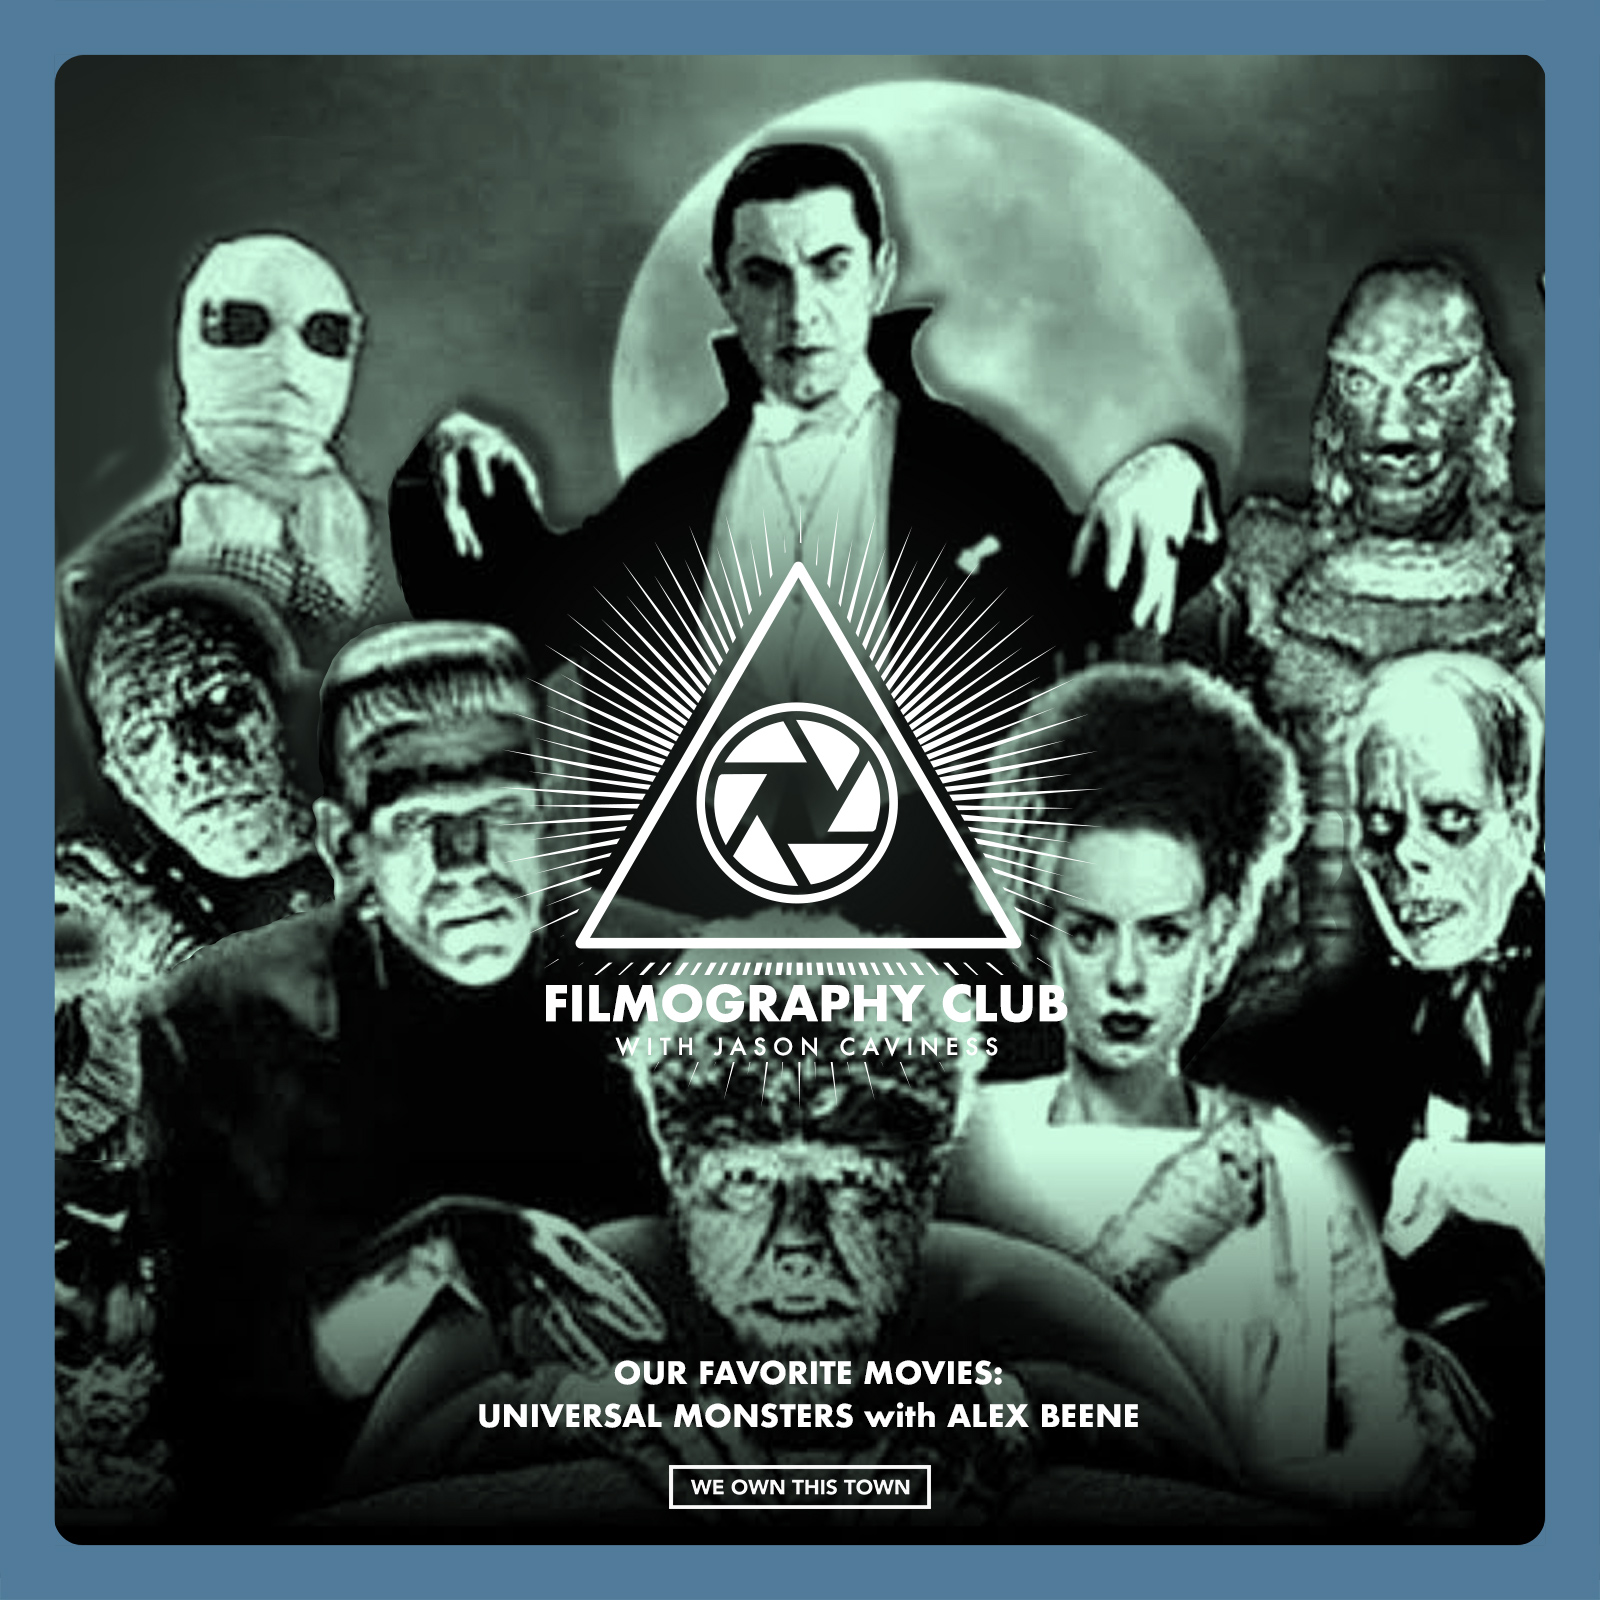 Our Favorite Movies: Universal Monster Movies with Alex Beene